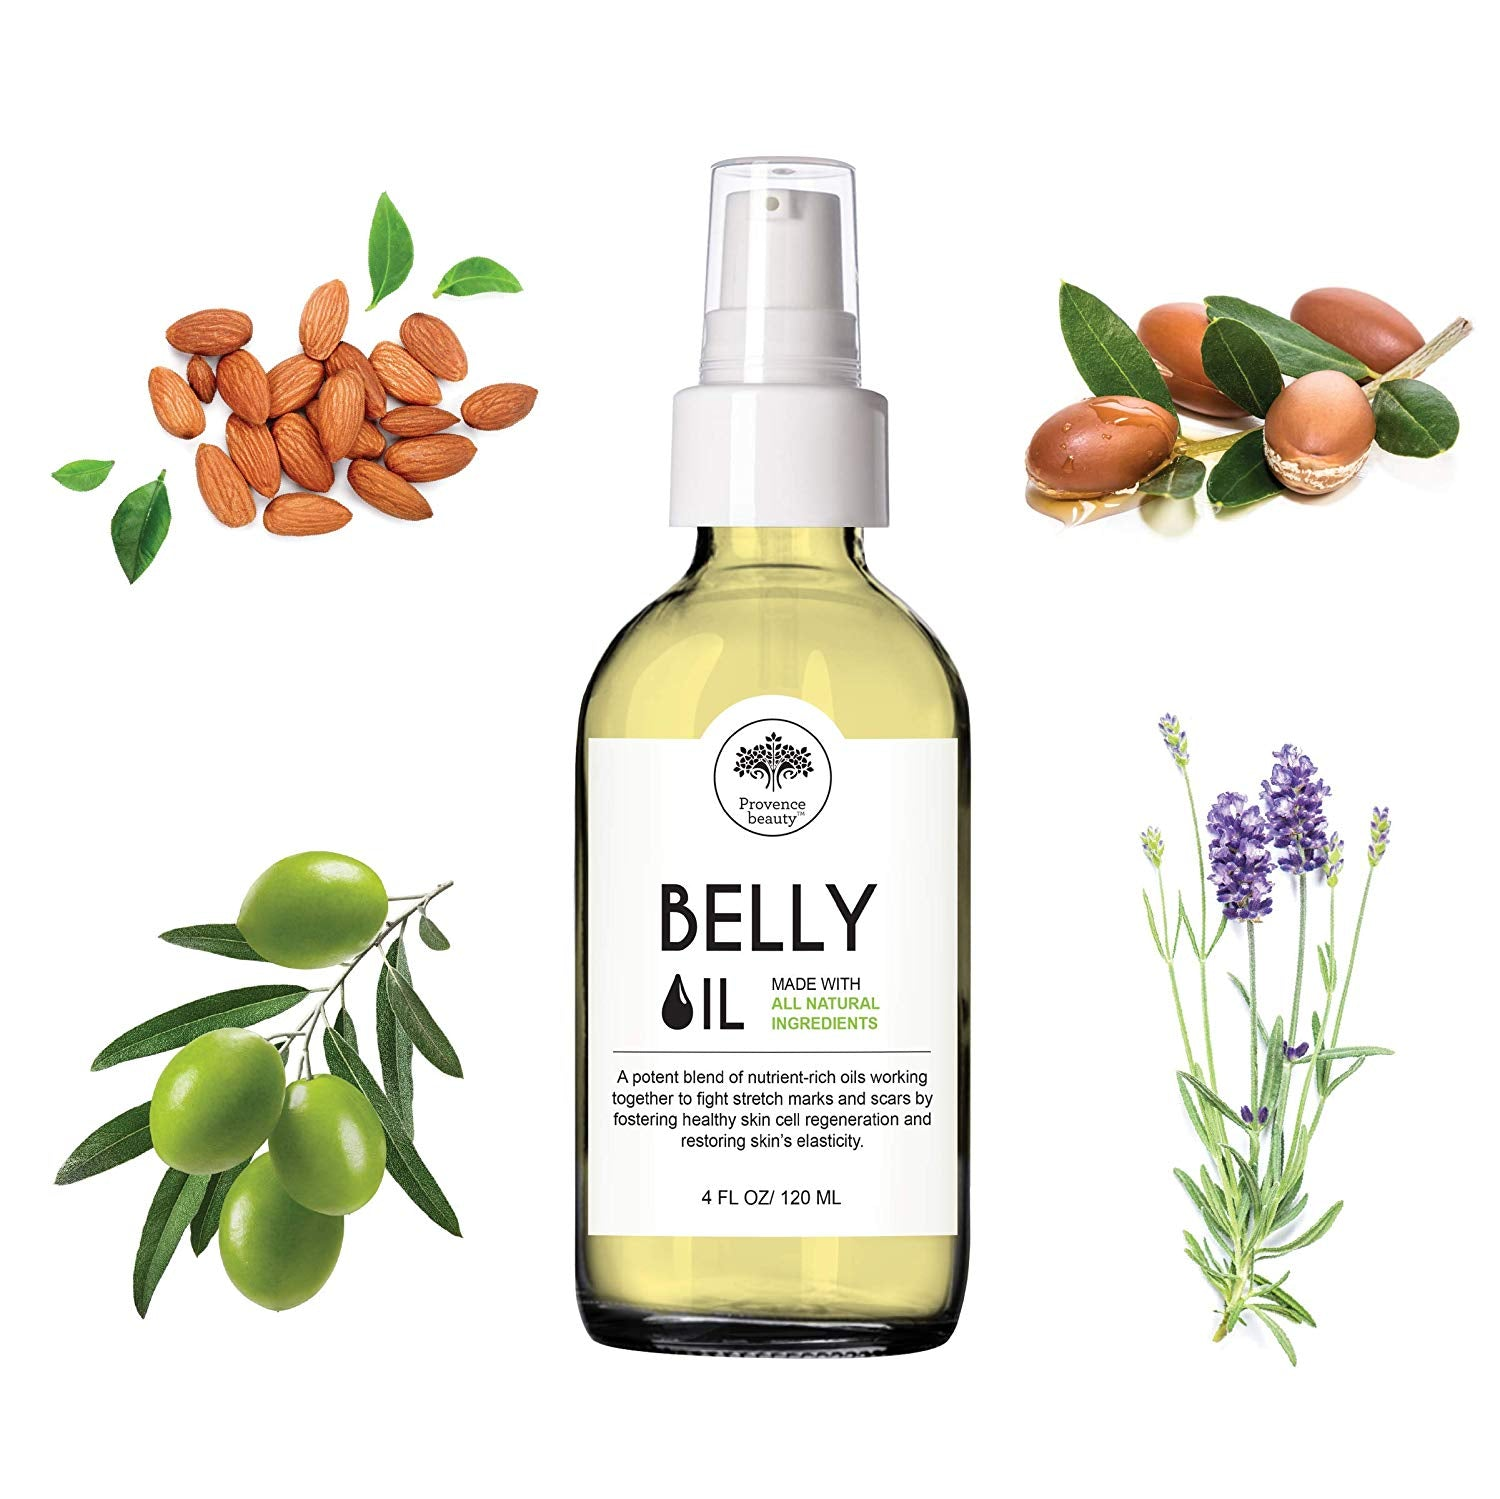 provence beauty belly oil reviews